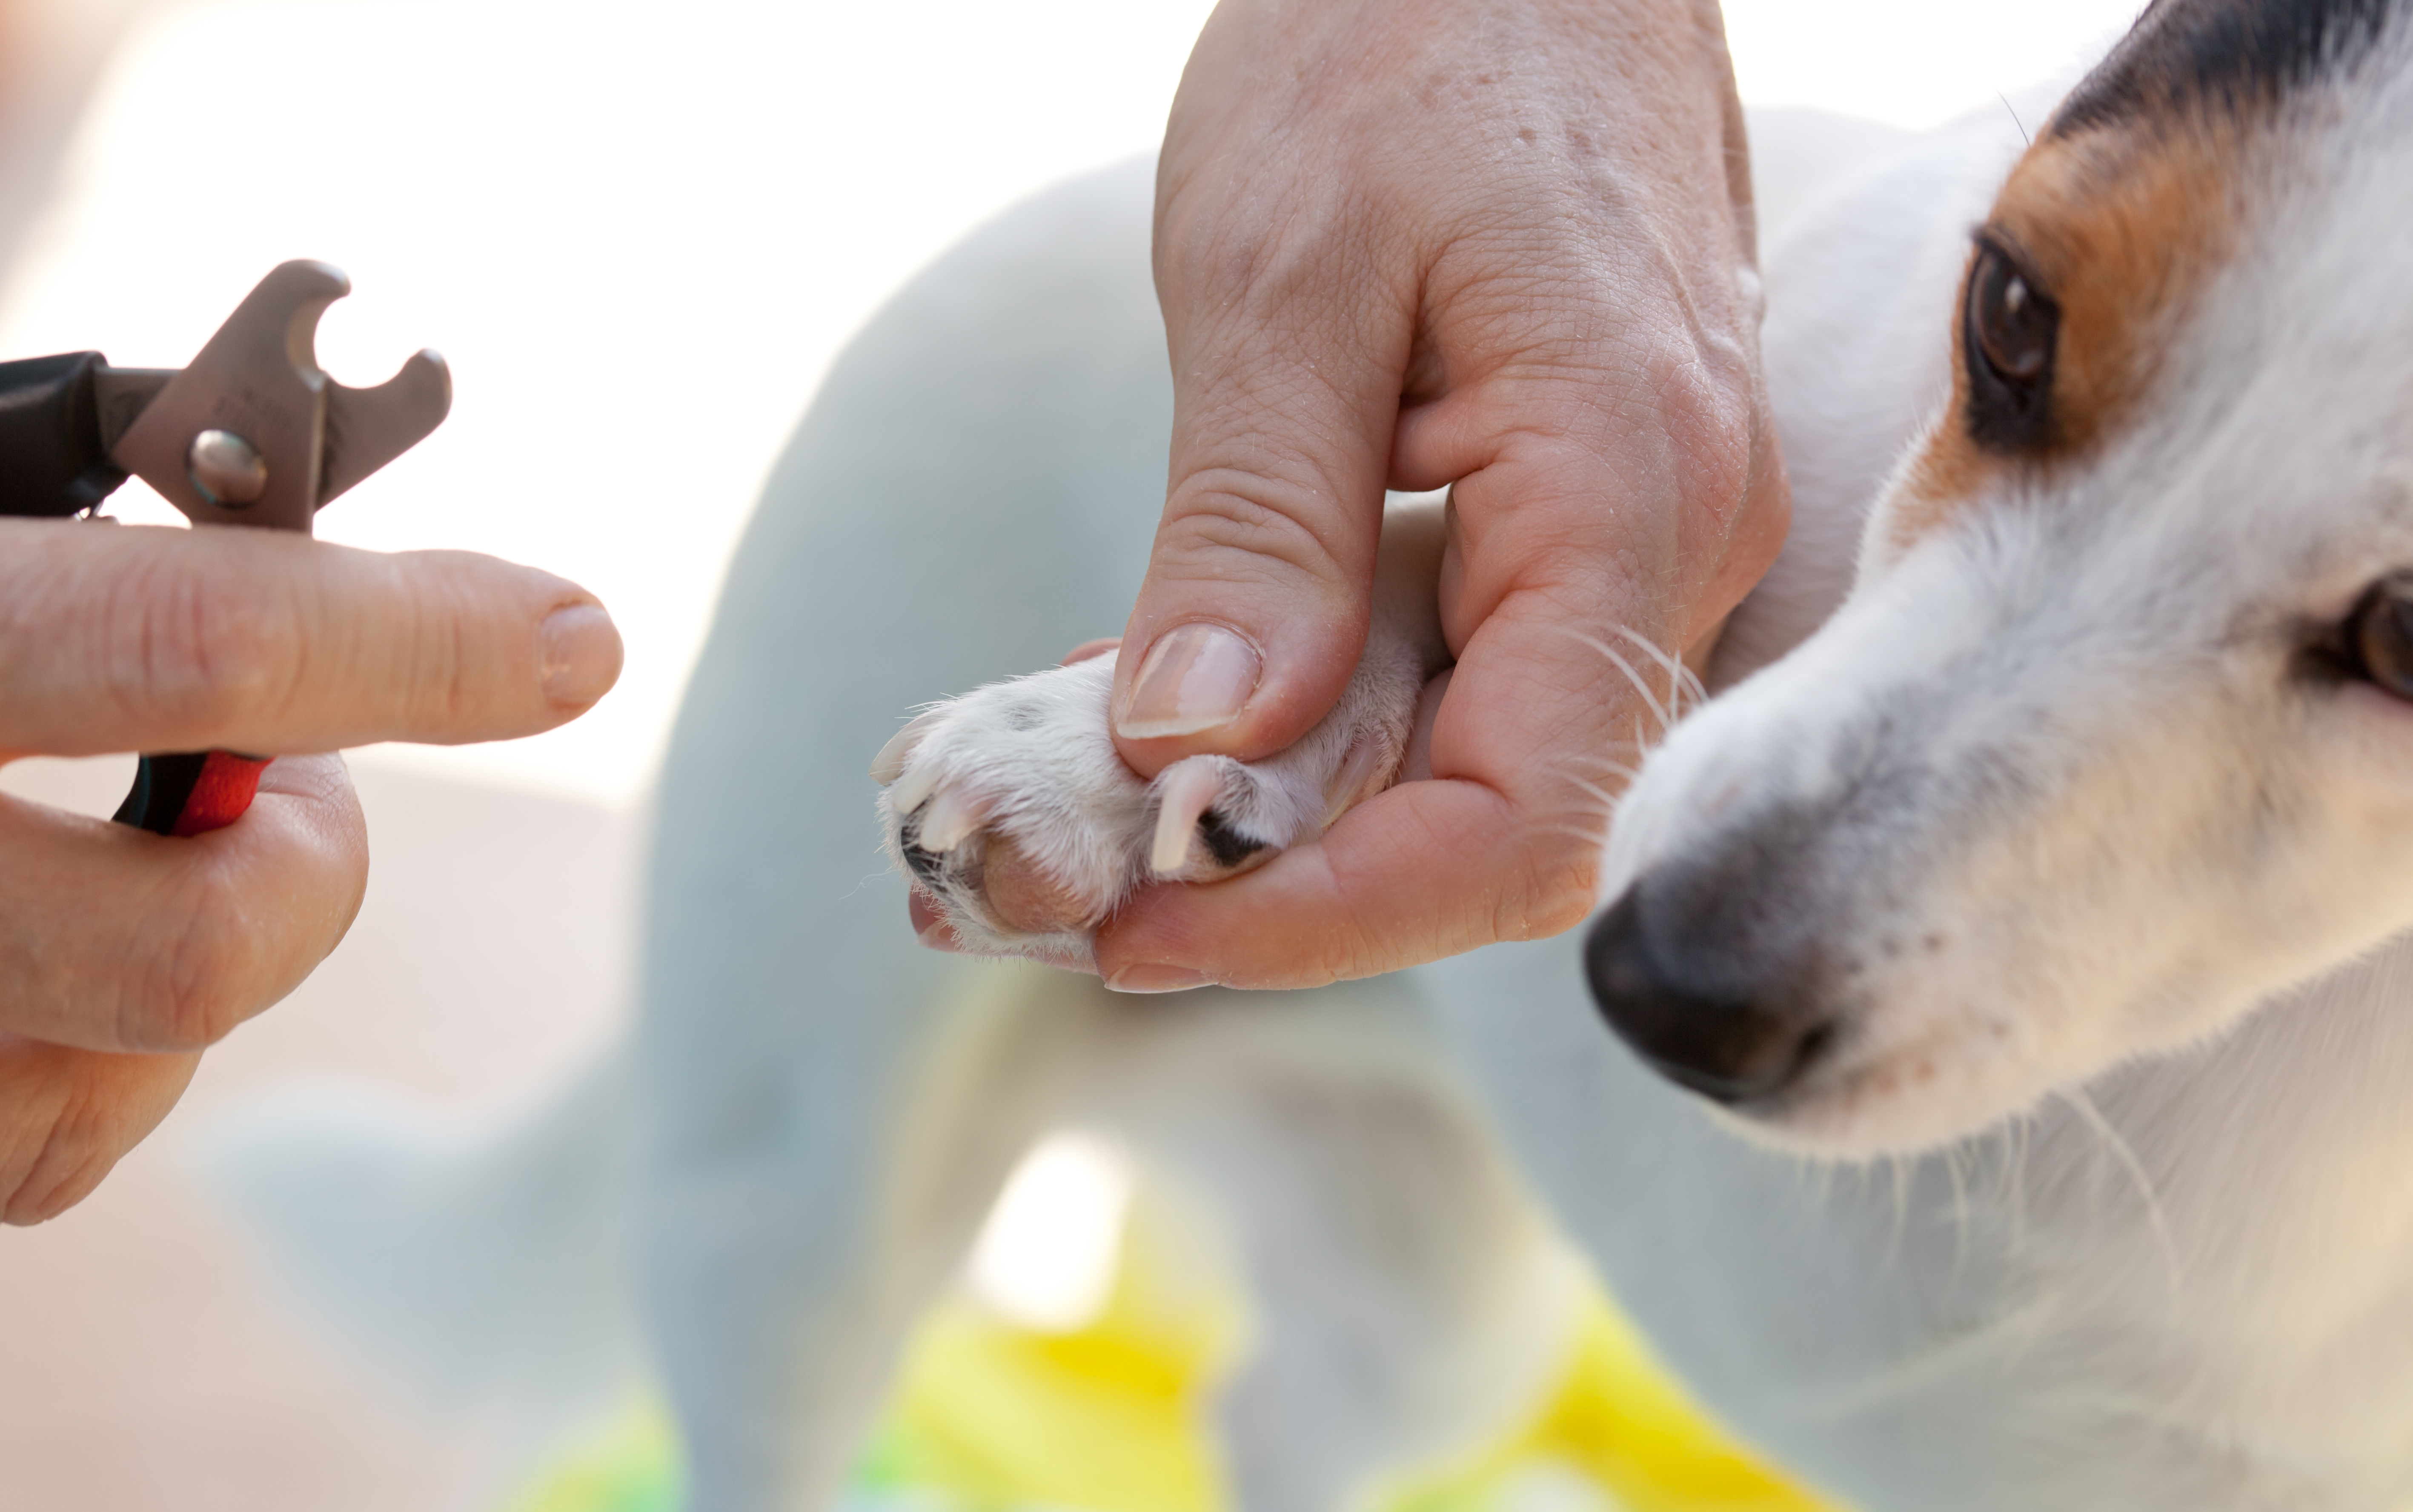 HOW TO CUT NAILS TO YOUR DOG?